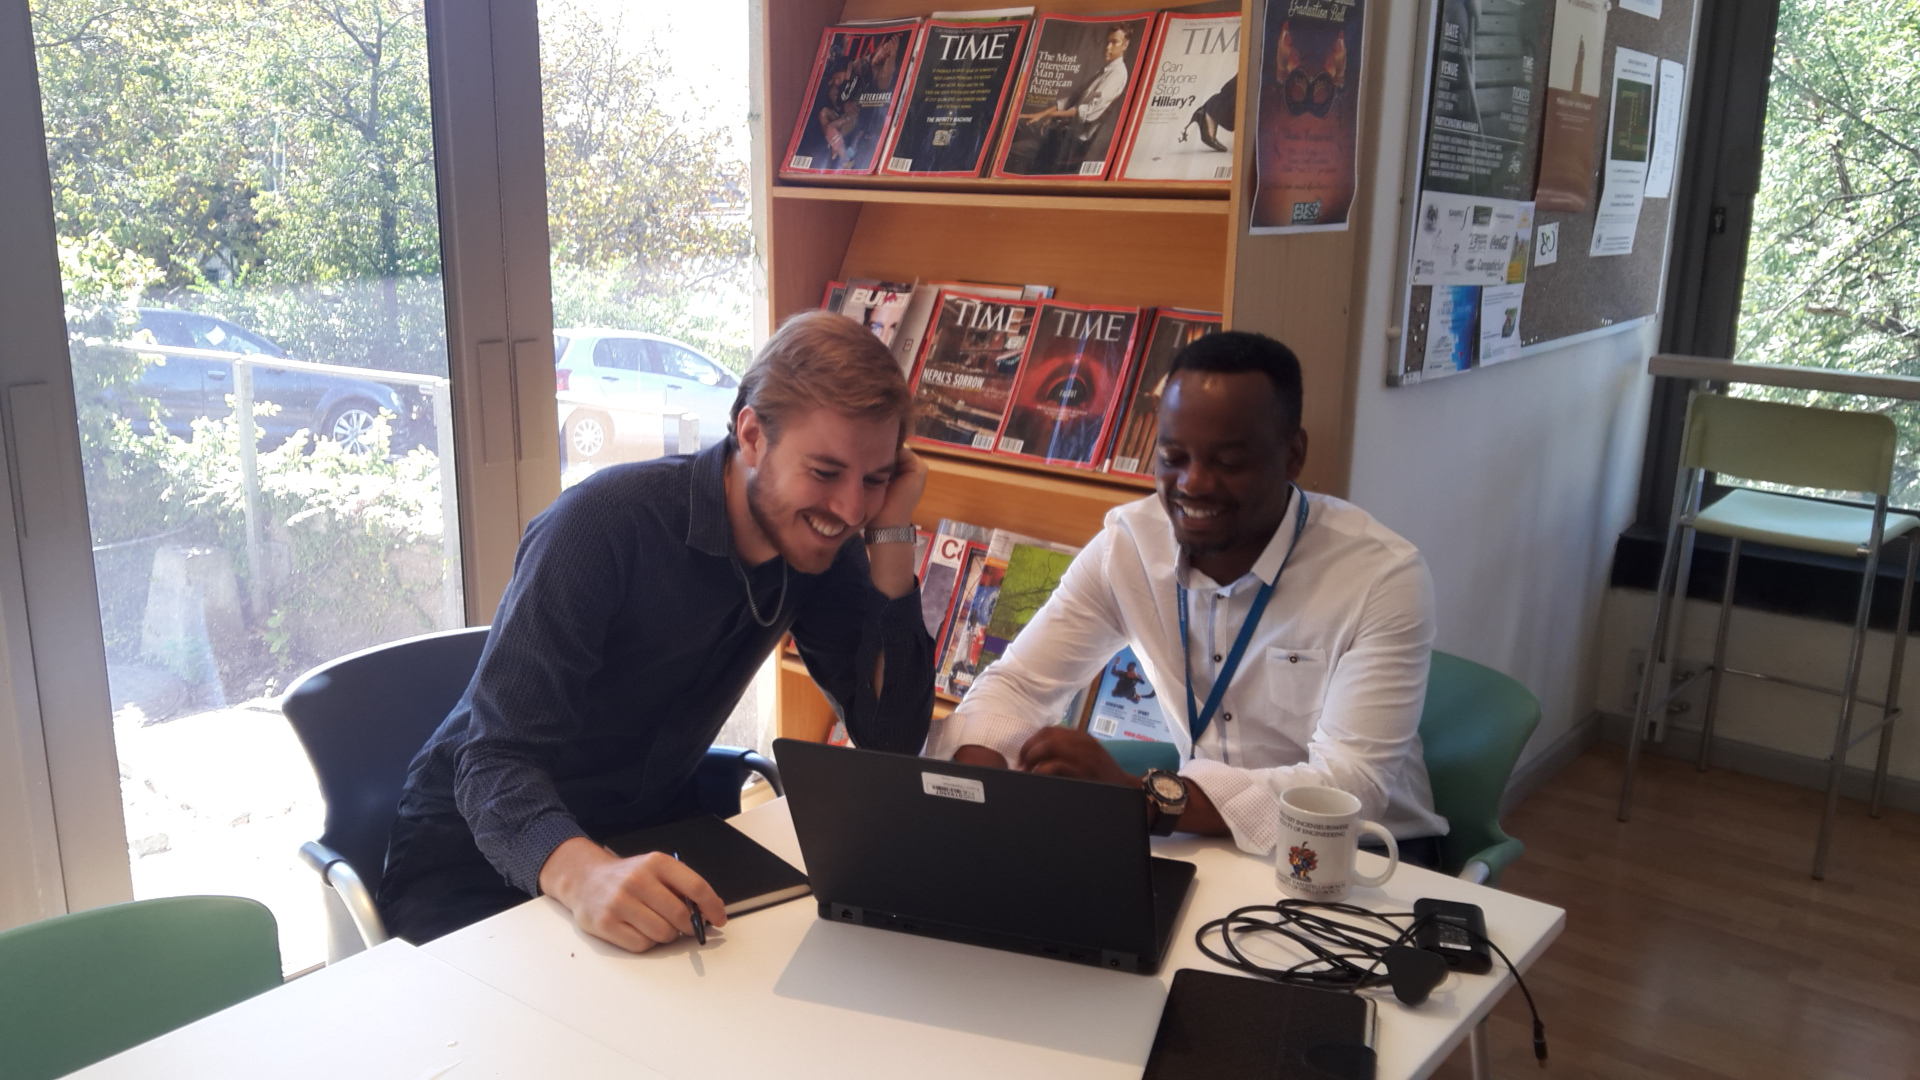 Dr Grant Ballantyne visiting scholar and Dr Edson Charikinya